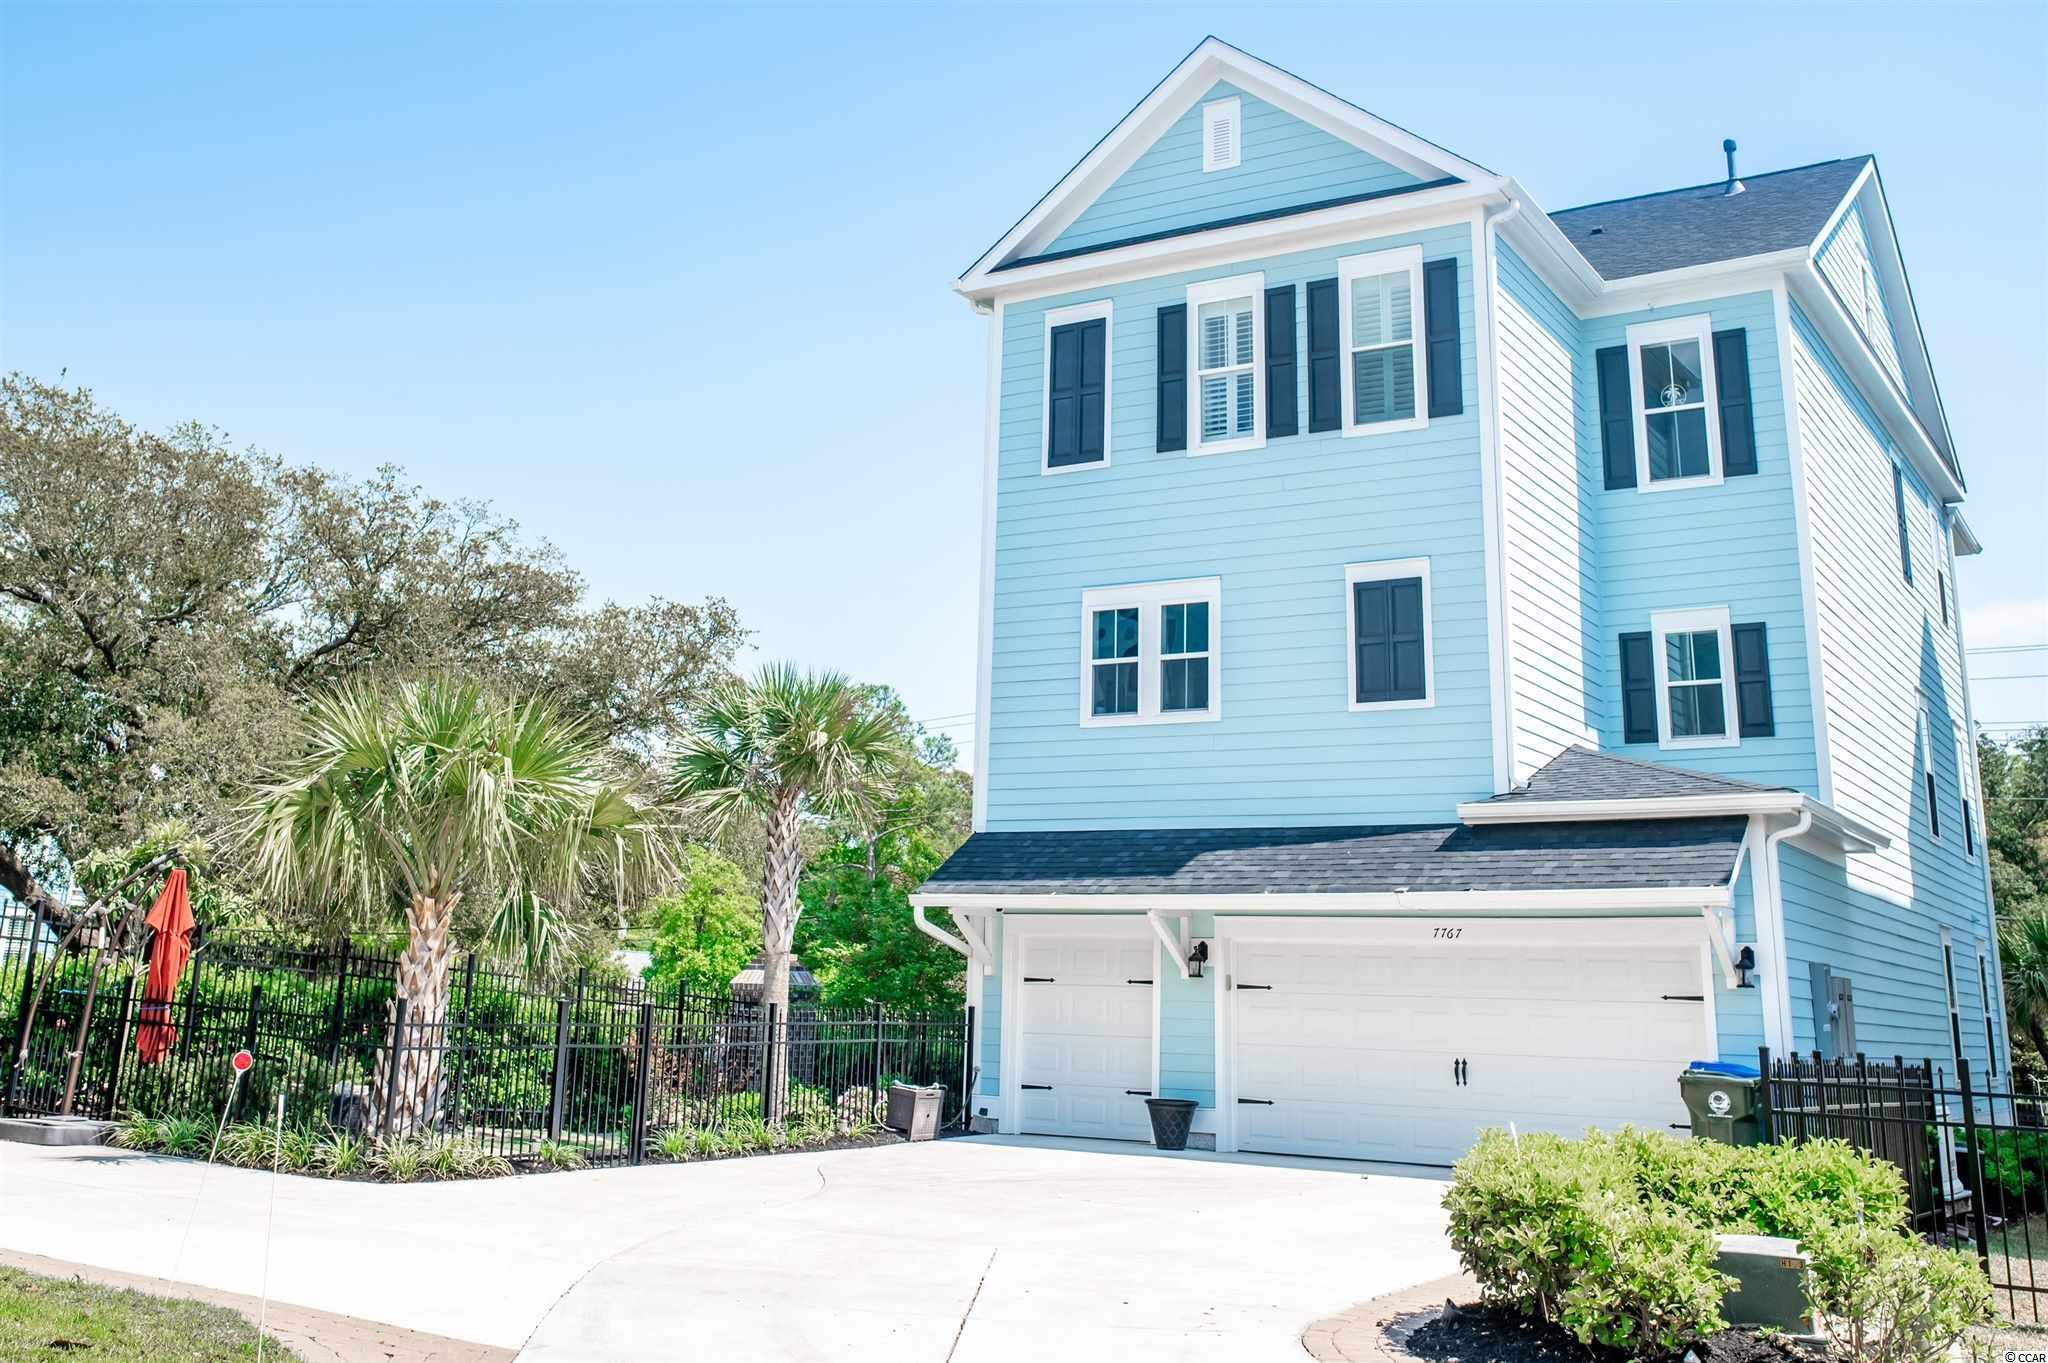 Throw a towel over your shoulder and walk to the beach from this gem of a home located directly on North Ocean Blvd! This three-story home has everything you could want in a beach house or multigenerational home. It boasts high-end finishes including upgraded tile and hardwoods throughout. High ceilings are accented by tall windows with plantation shutters. The elevator services all floors and is conveniently located next to the garage entrance. The first level features two spacious bedrooms, large closets, and an upgraded bathroom with frameless glass shower enclosure and granite countertops. Feel the salty ocean breezes from the first-floor porch swings—one of three that span the entire front width of the home. This home also offers full-size washer/dryer laundry rooms on both the first and third floors. The second floor is dedicated to living space with a large open kitchen featuring a center island cooktop, huge farmhouse sink, soft close cabinet doors and drawers, separate wet bar area with wine fridge, and upgraded Kenmore Elite appliances. The center island has custom pull-outs for easy access to pots and pans along with a clever spice drawer at your fingertips. Next to the kitchen is a big pantry with plenty of space to store supplies. The kitchen opens to the living room spanning the entire front of the home with a gas fireplace and windows all the way around, spilling in the warm sunshine. Spend time around a family meal on the expansive middle porch with fans and bistro lighting. The third floor of the home features a spacious 16 X 19-foot master suite with tray ceiling and two more bedrooms that share a jack and jill bathroom. The master suite is an amazing space with an 8 X 16-foot walk-in closet with custom closet organizer, master bath with both a garden tub and a step-in tiled frameless glass shower surround, and granite counters. Enter the third-floor porch from the master for a peekaboo ocean view. The home also features a large fenced-in side yard